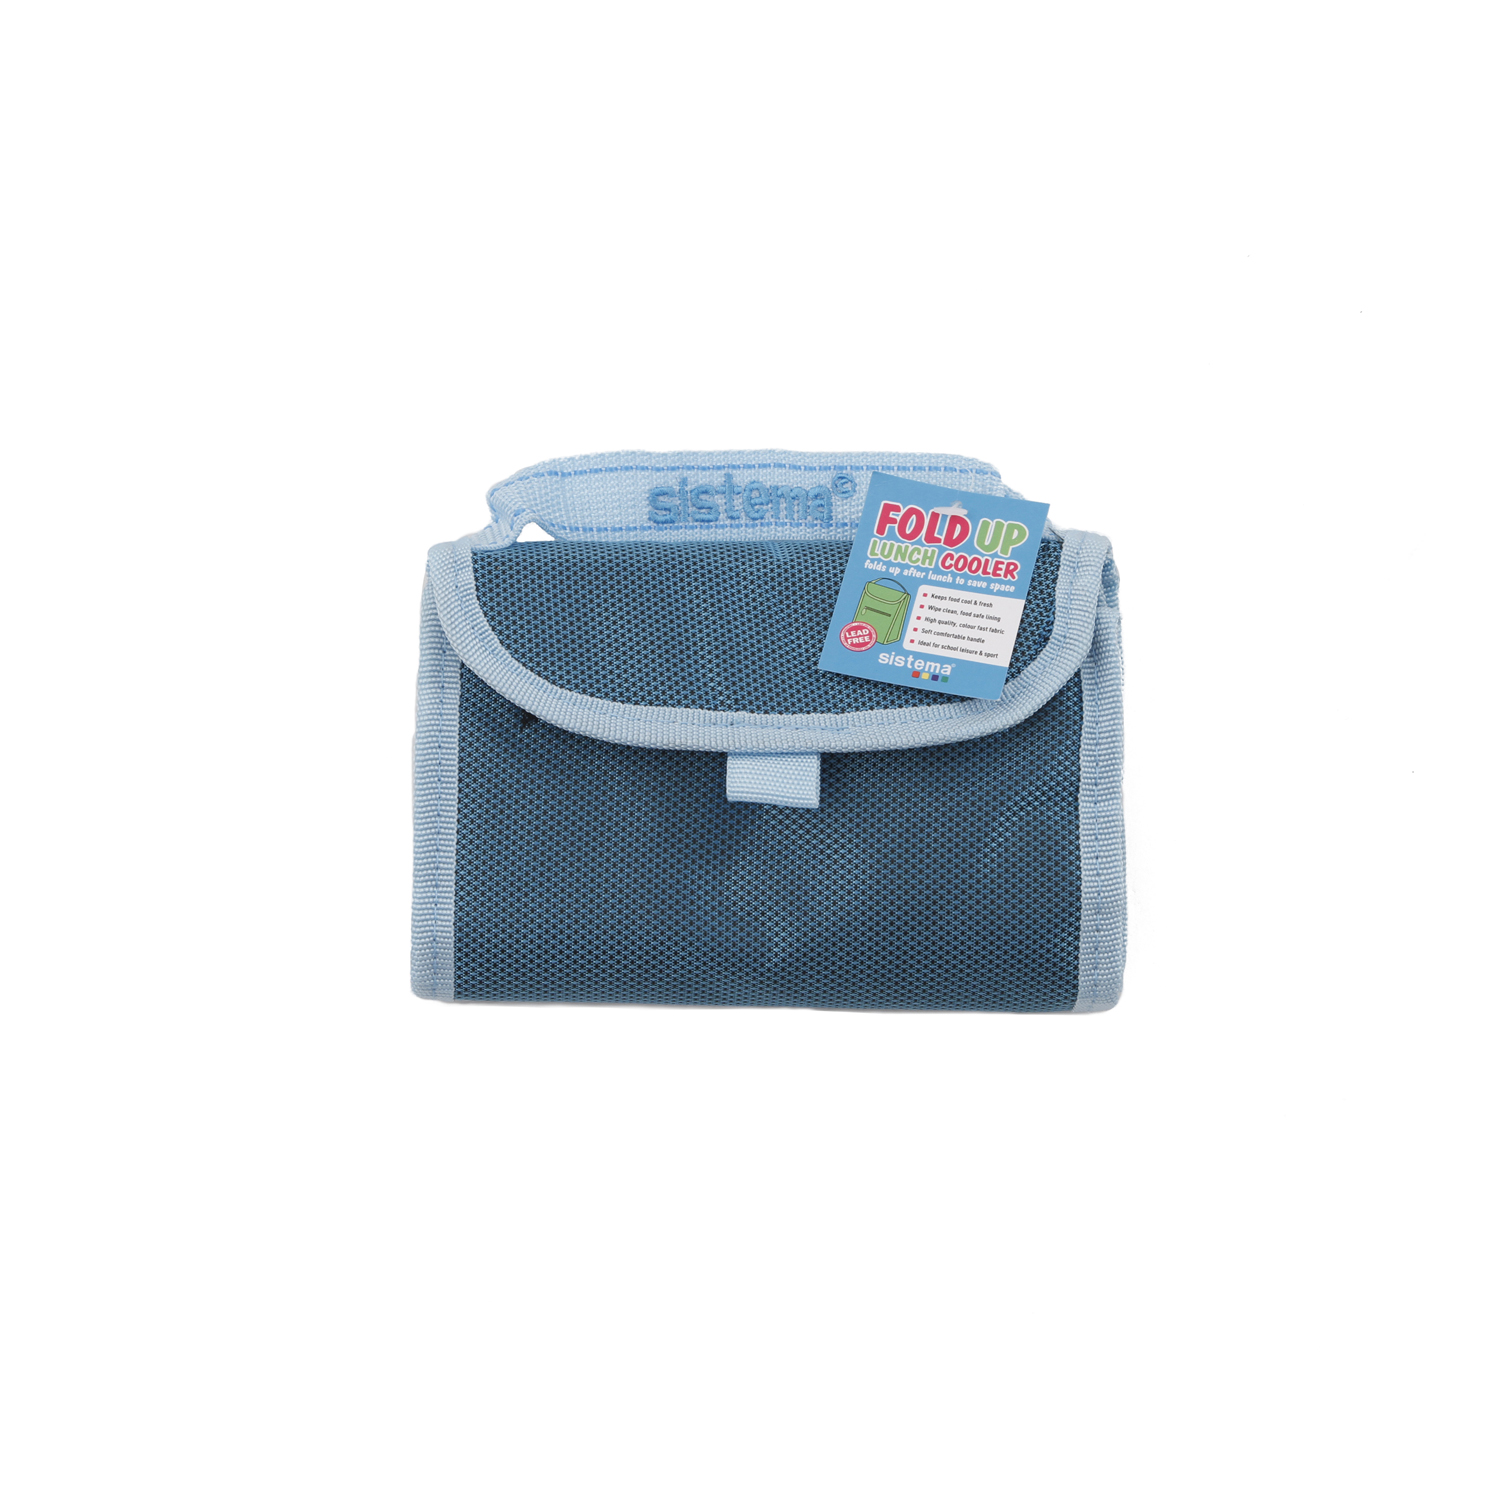 Fold Up Lunch Cooler - Home Store + More